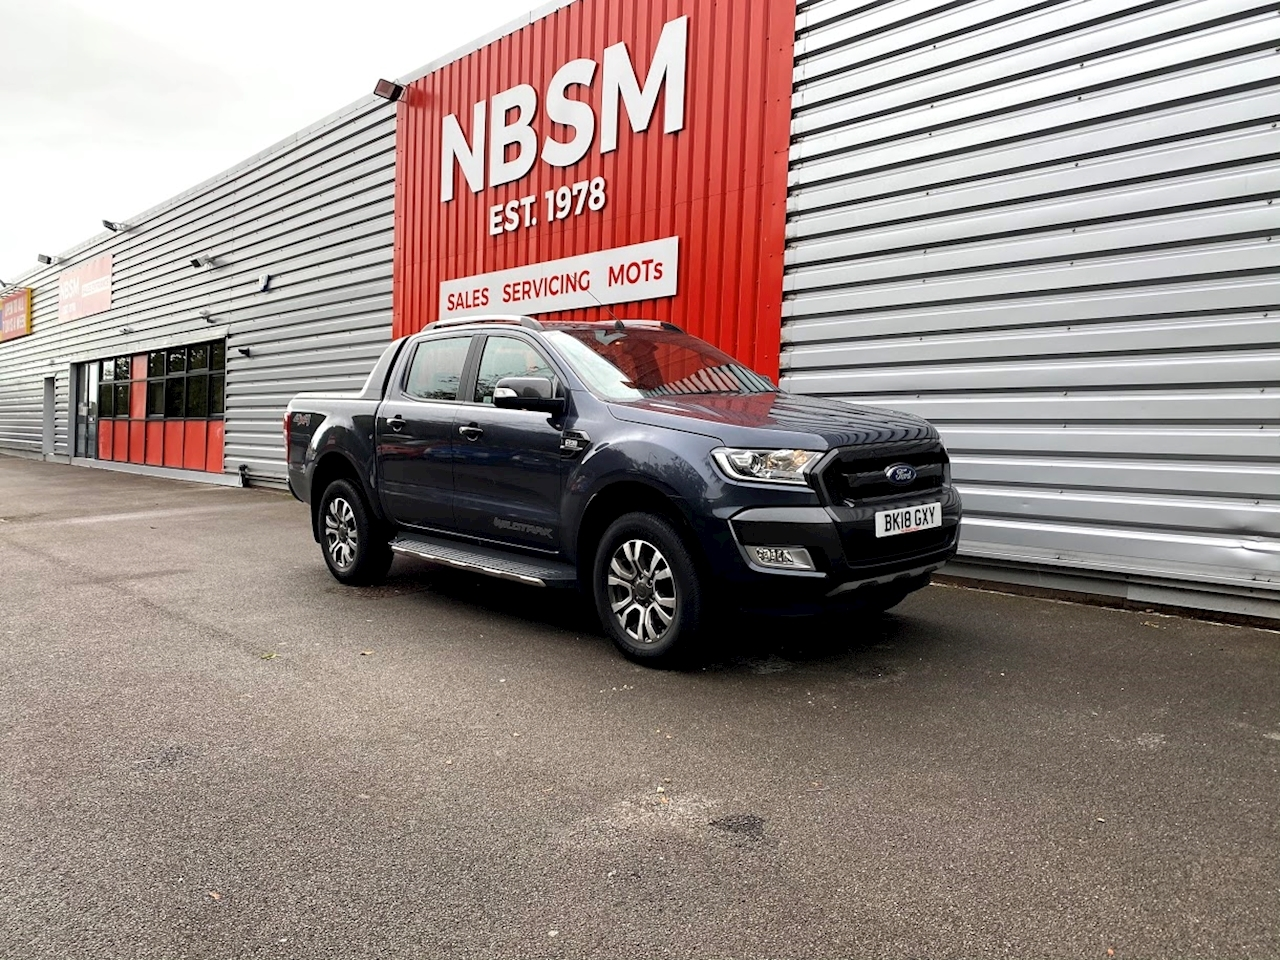 Ford Ranger Wildtrak 4X4 Dcb Tdci 3.2 Pick-Up Automatic Diesel